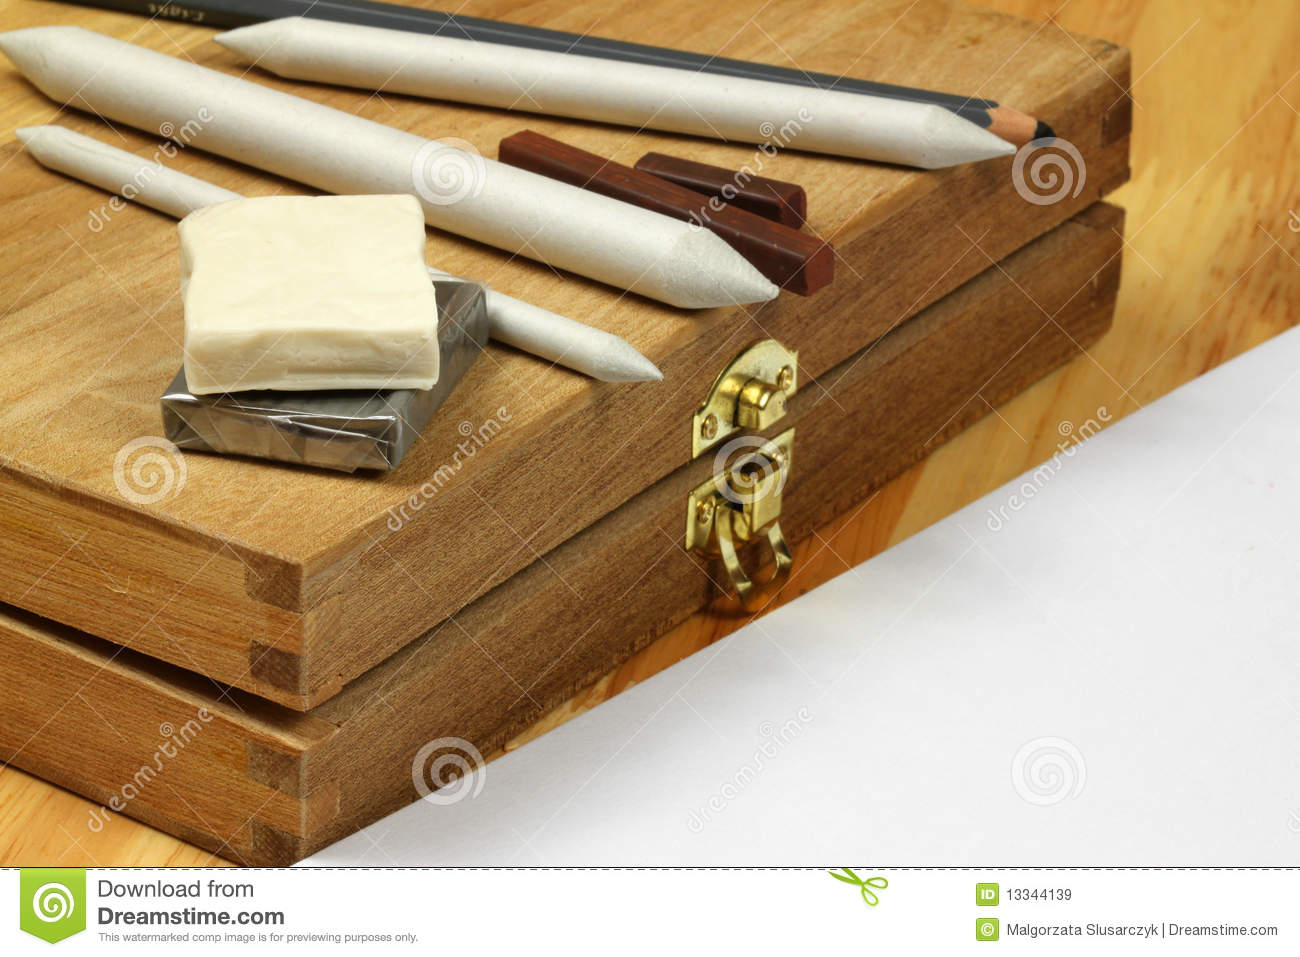 Drawing tools royalty free stock images image 13344139 for Draw tool free